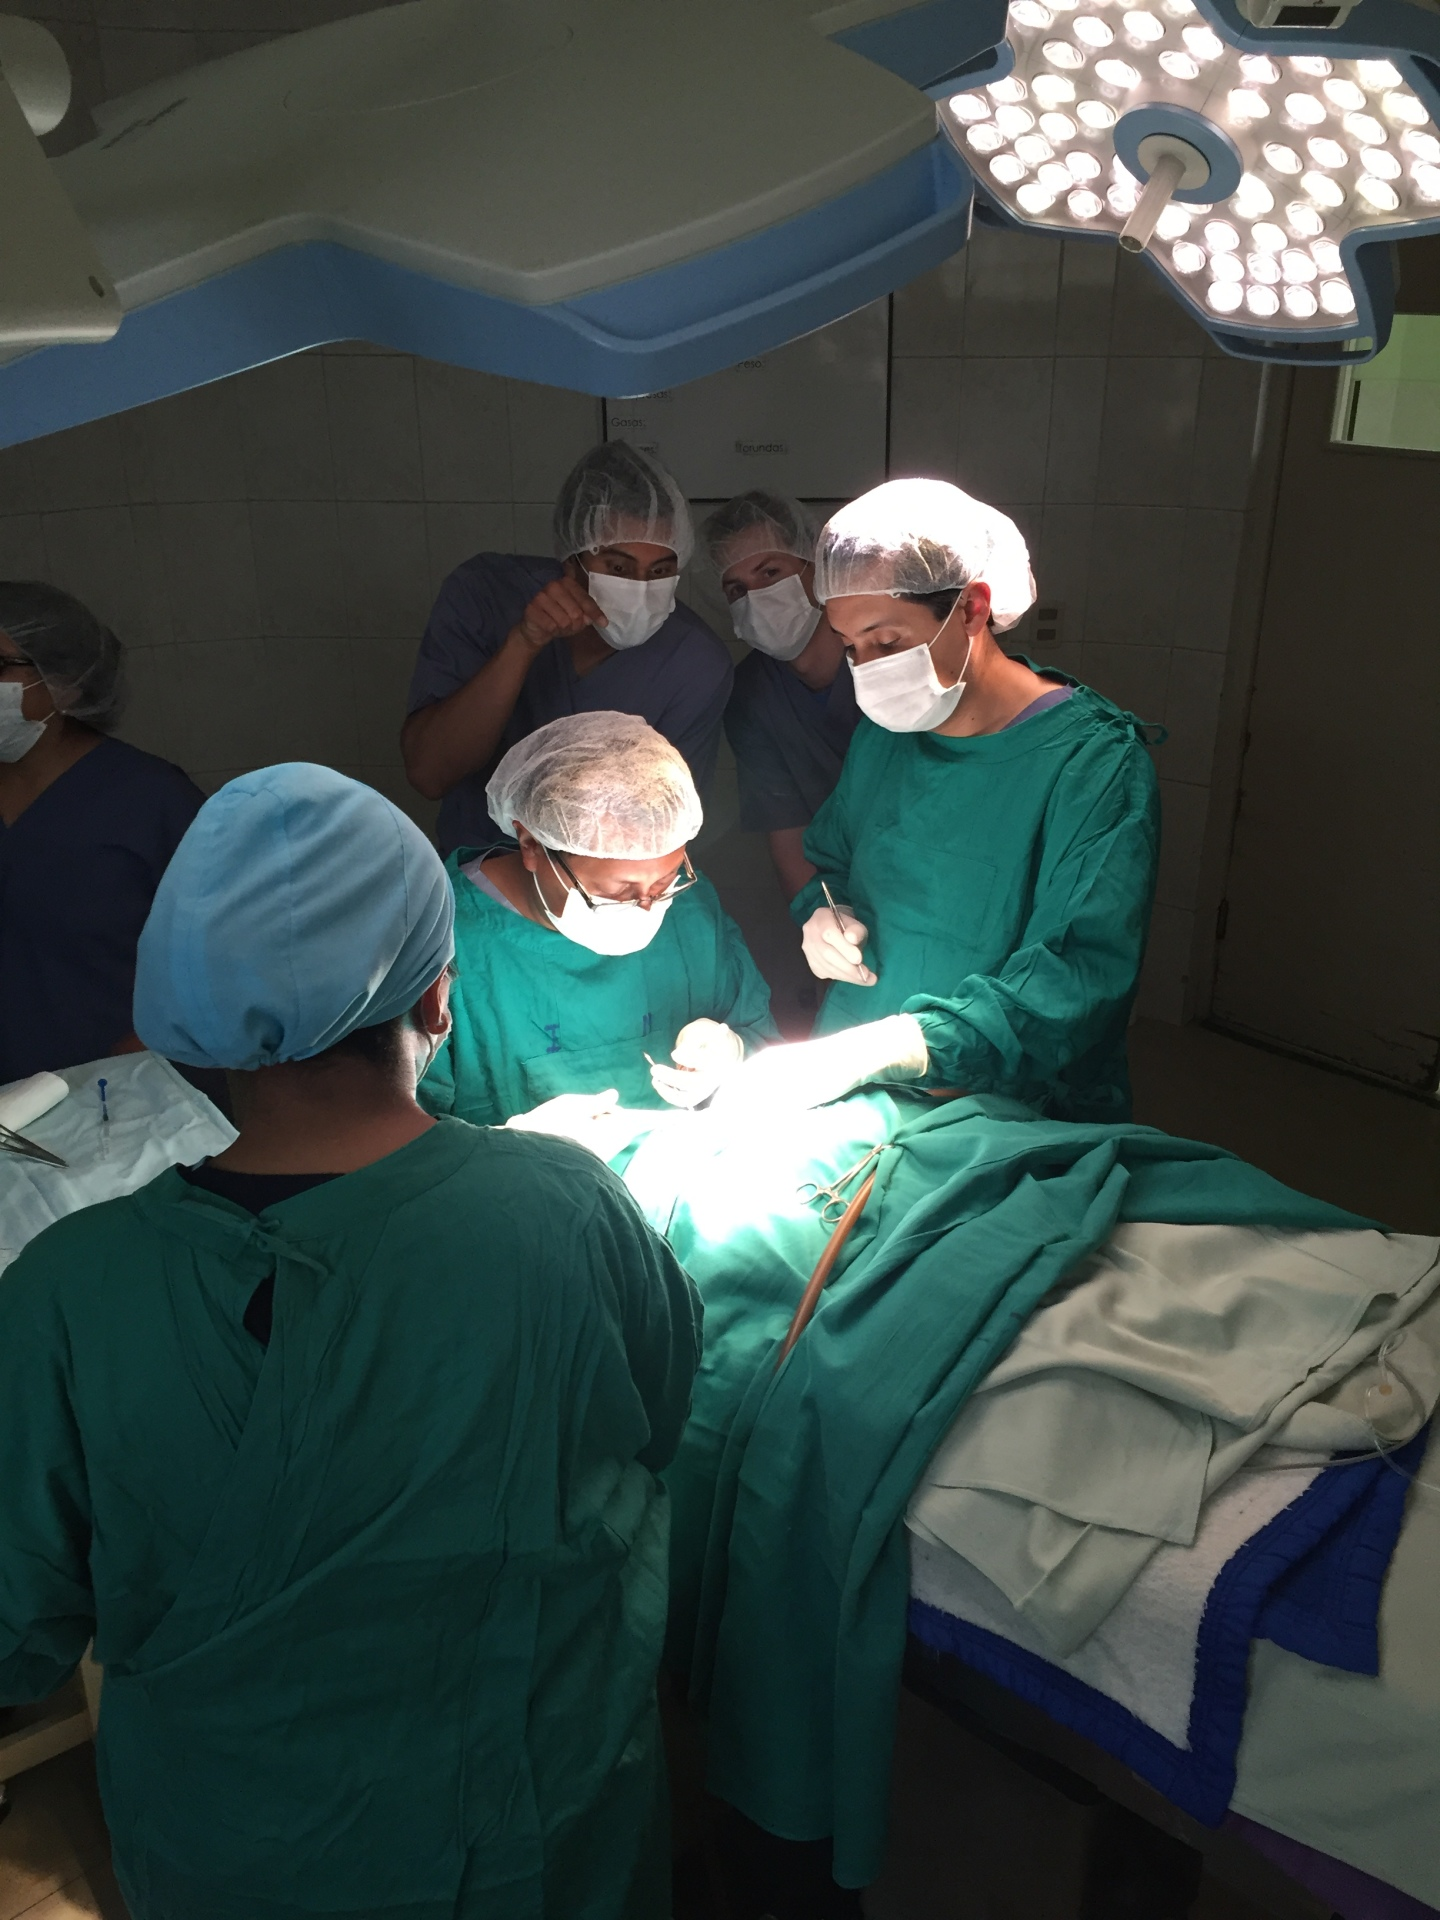 Observing a cleft lip correction surgery